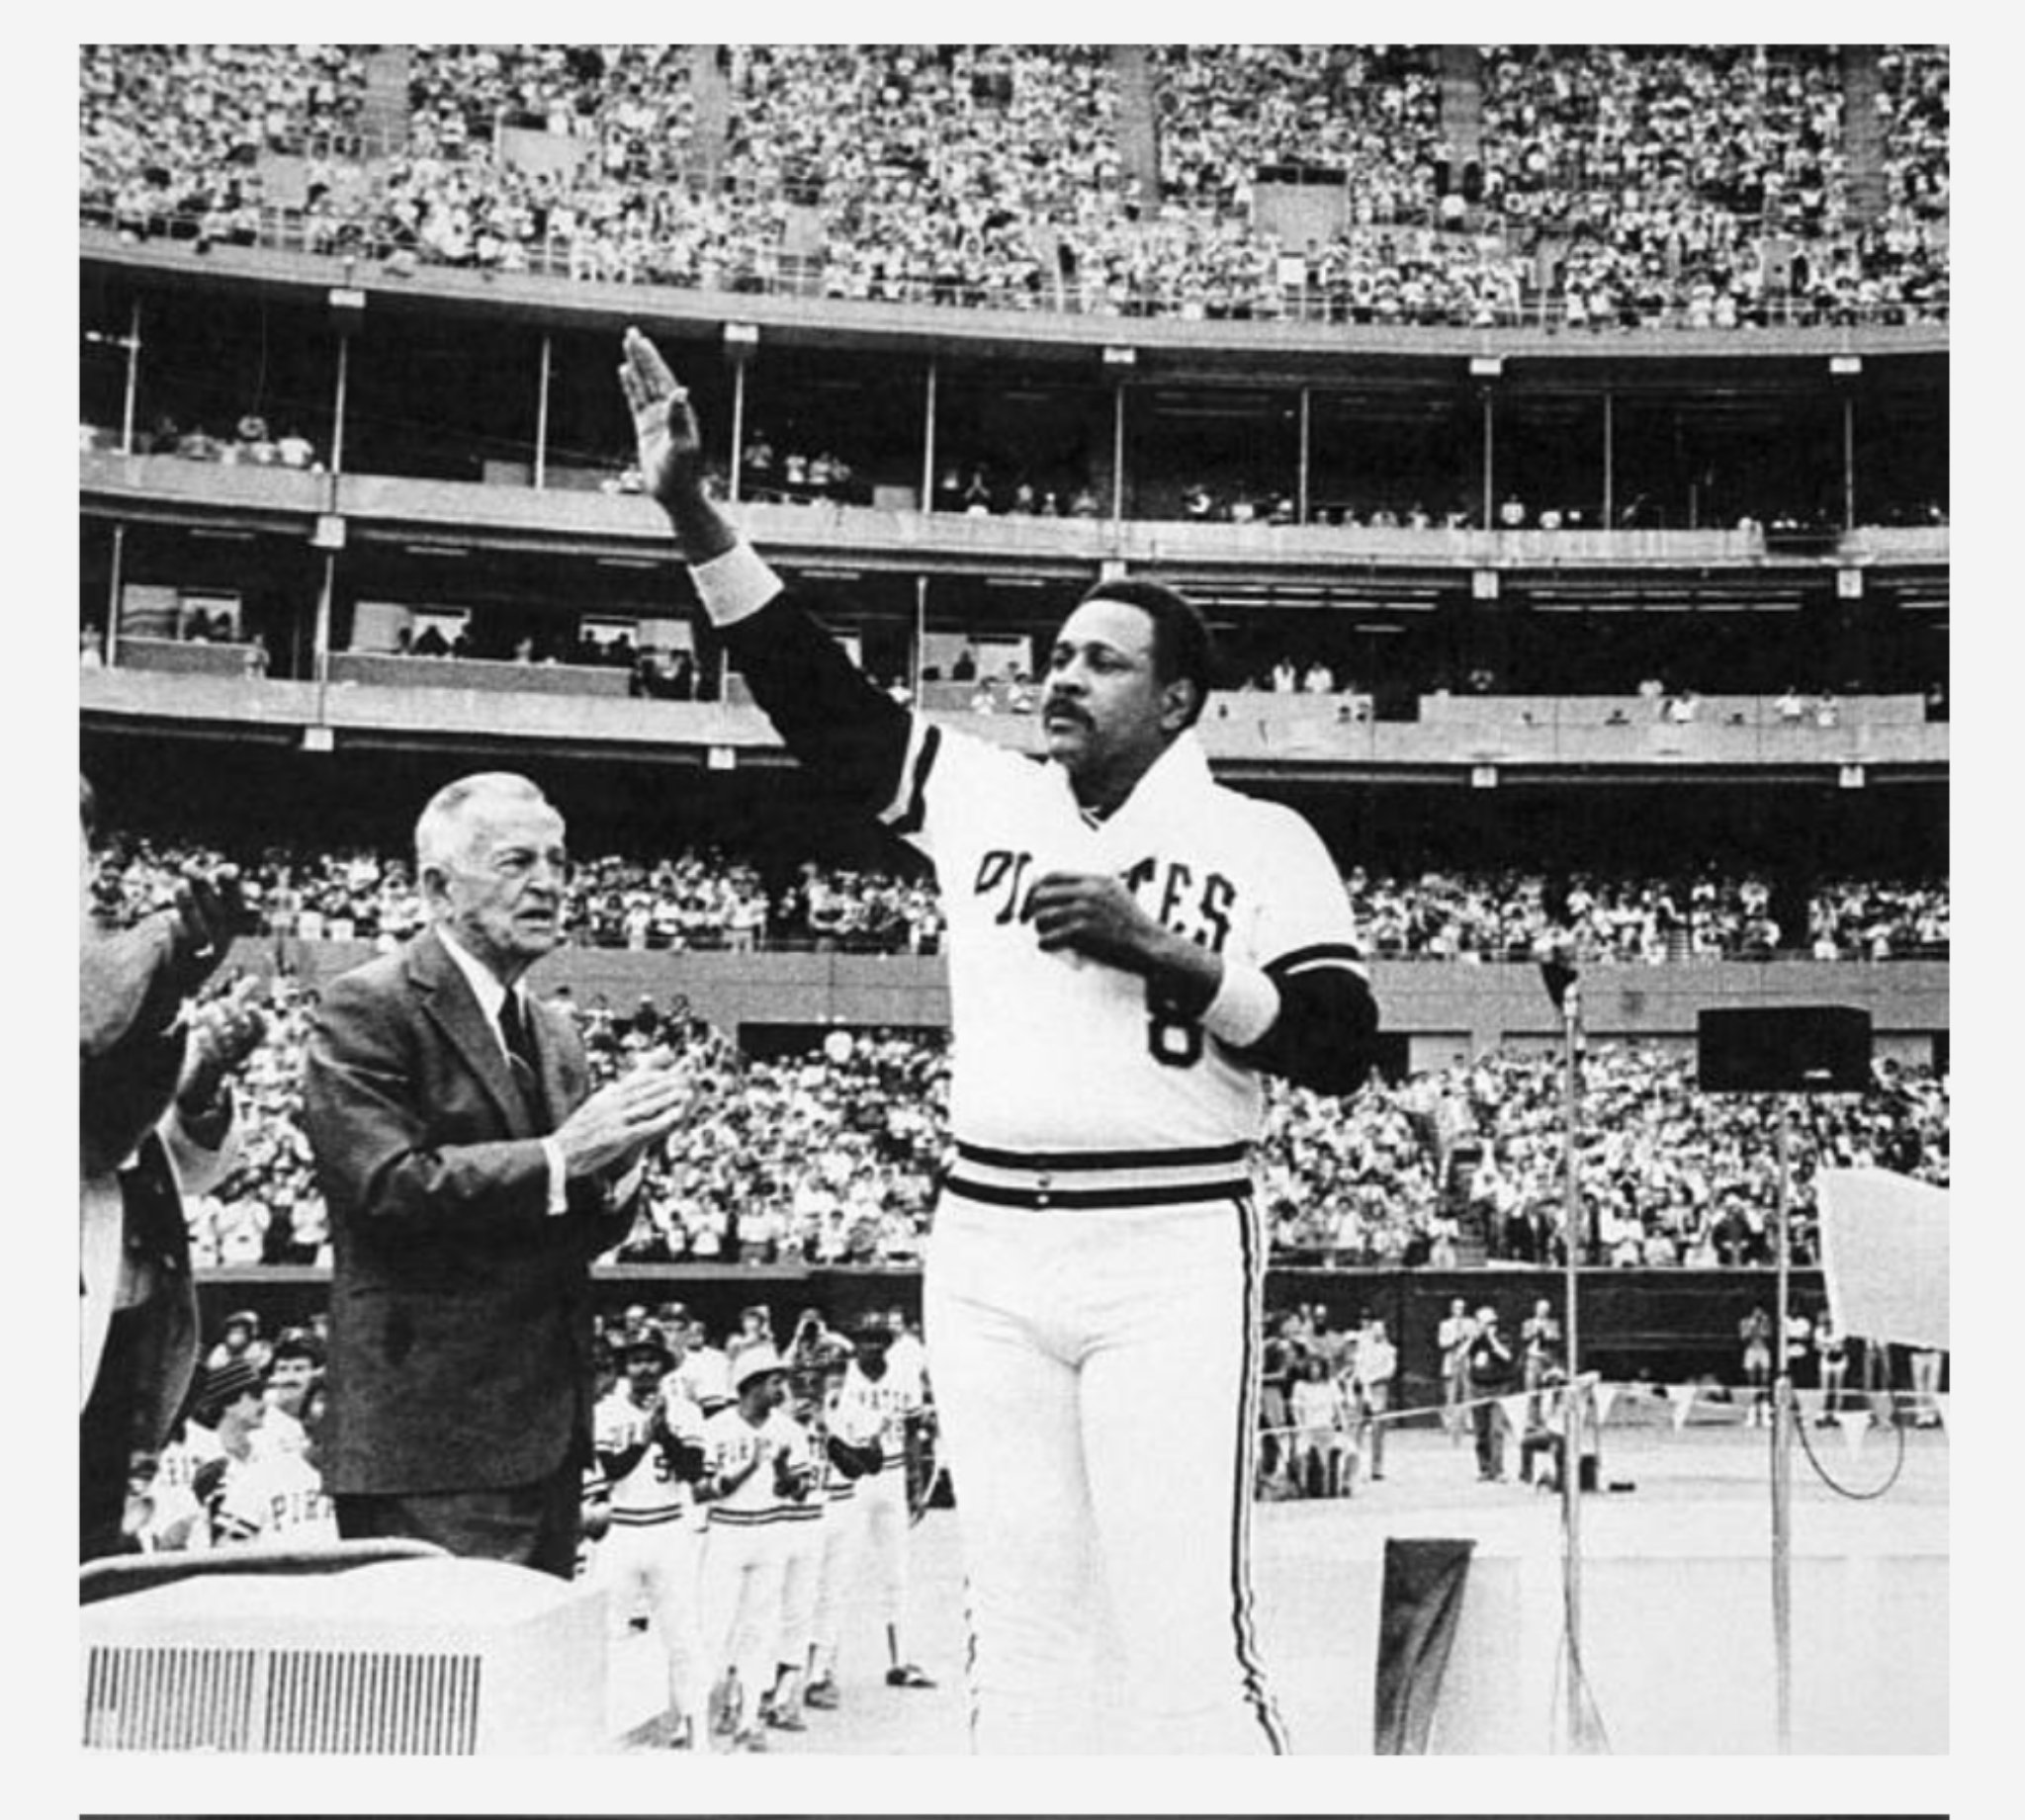 September 6, 1982 - Willie Stargell waves to the crowd during a pregame ceremony to honor the slugger as he announced his retirement at the end of the season. #Pittsburgh #Pirates #MLB #OTD #1980s #LetsGoBucs https://t.co/XG4PmVJwc3